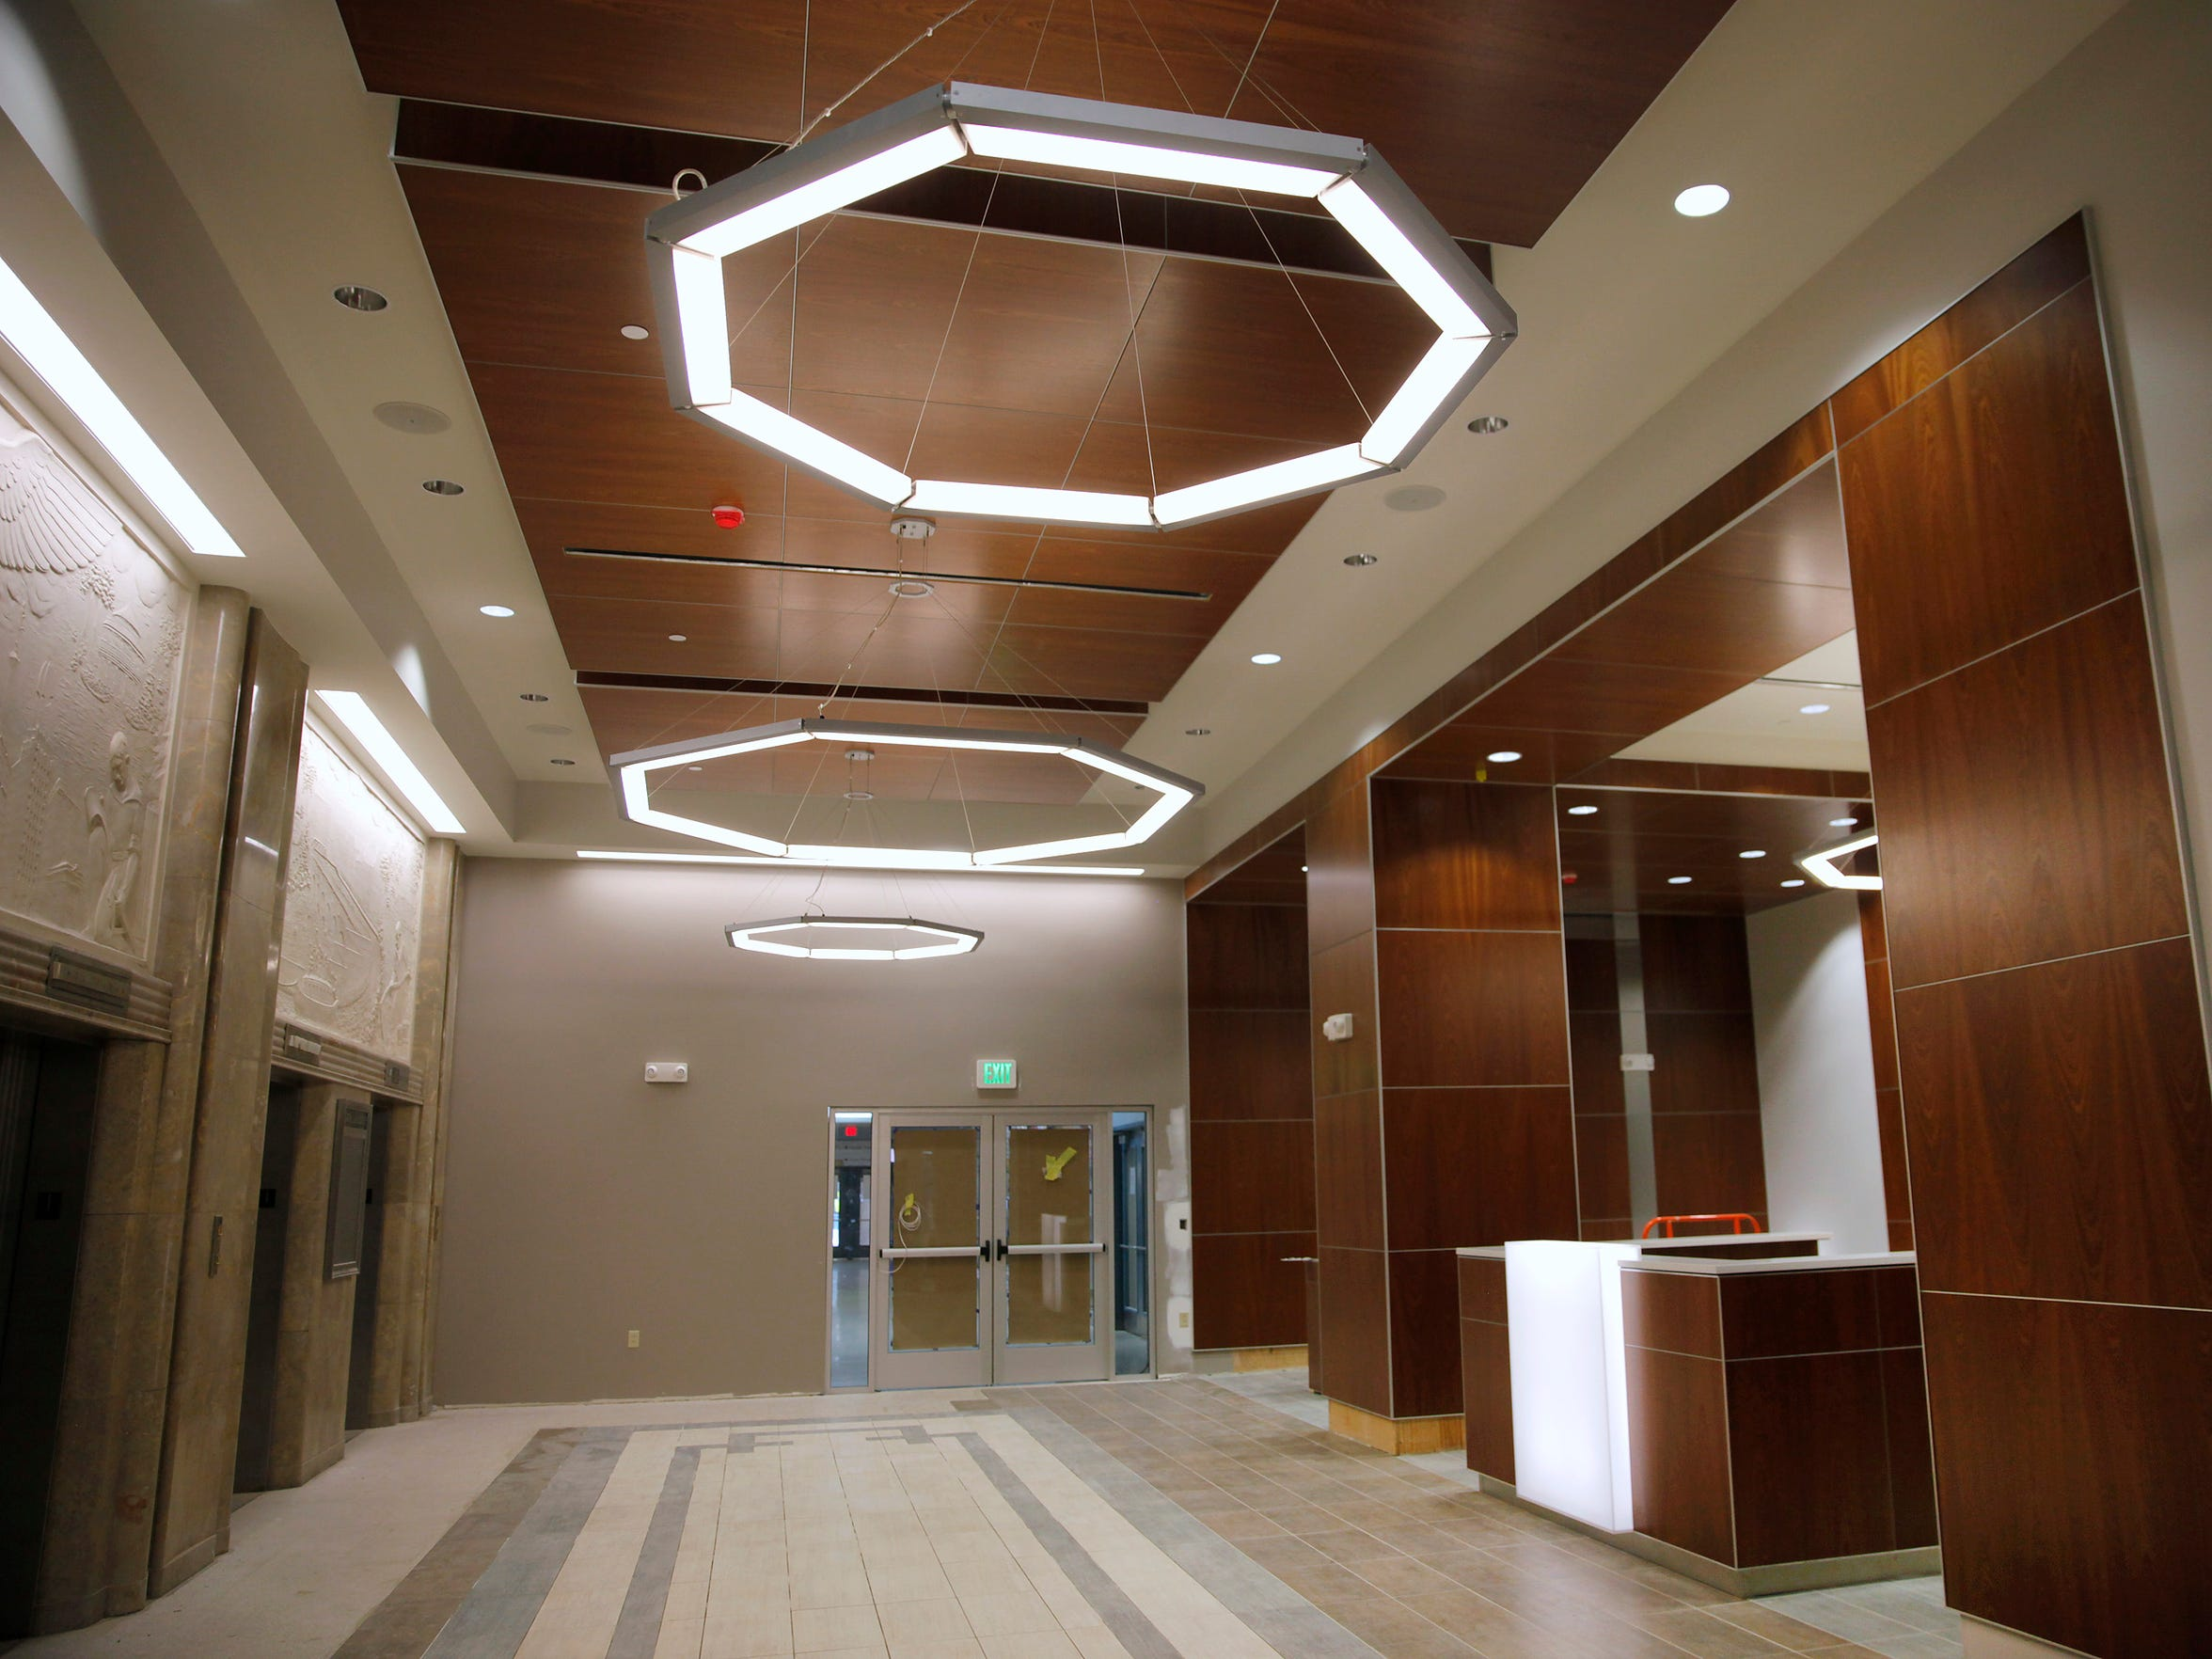 This is the new first floor lobby area of the Sibley